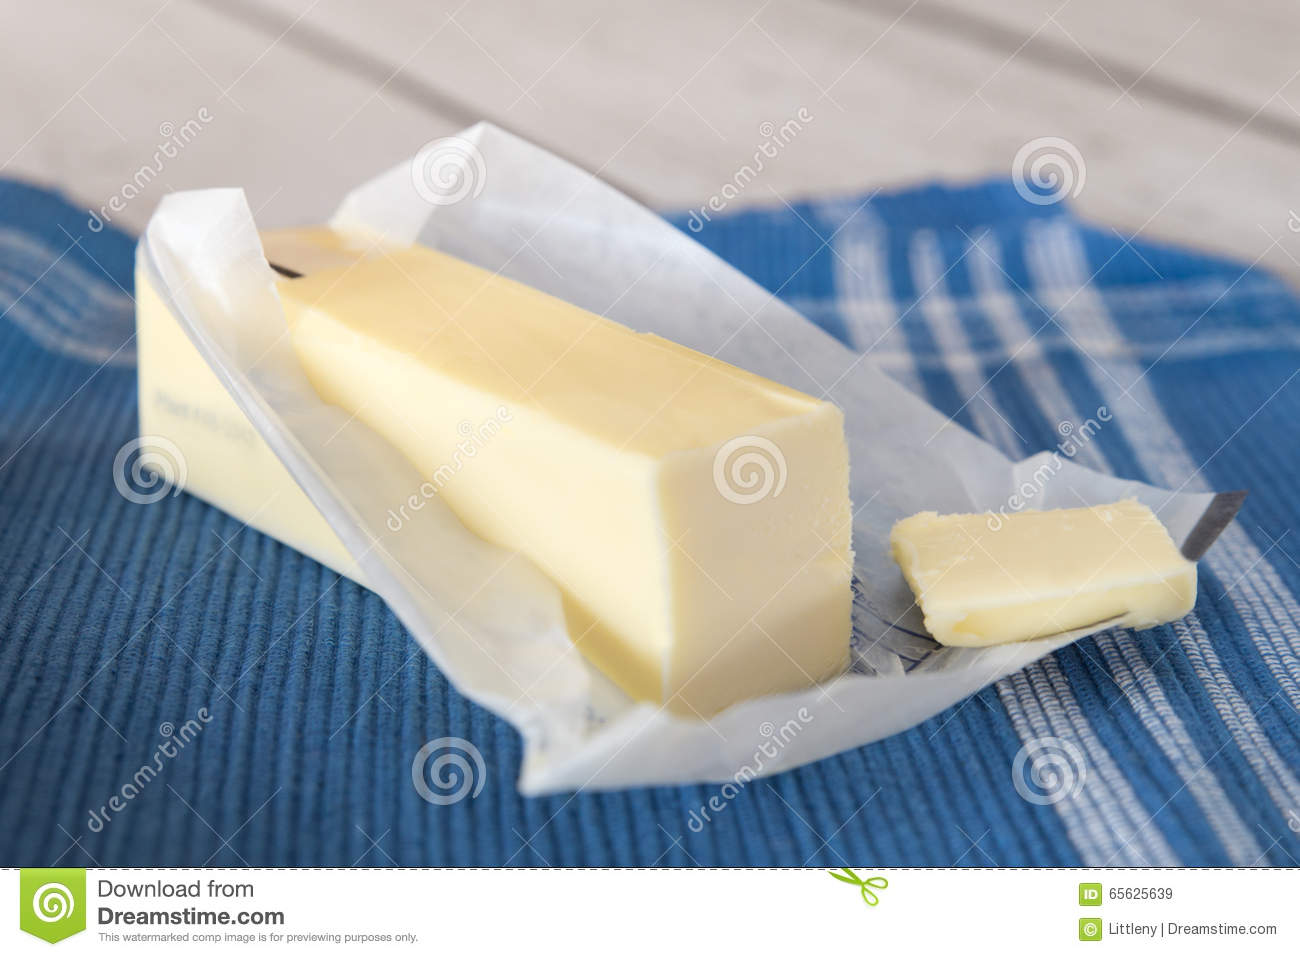 Butter Stock Photo - Image: 65625639